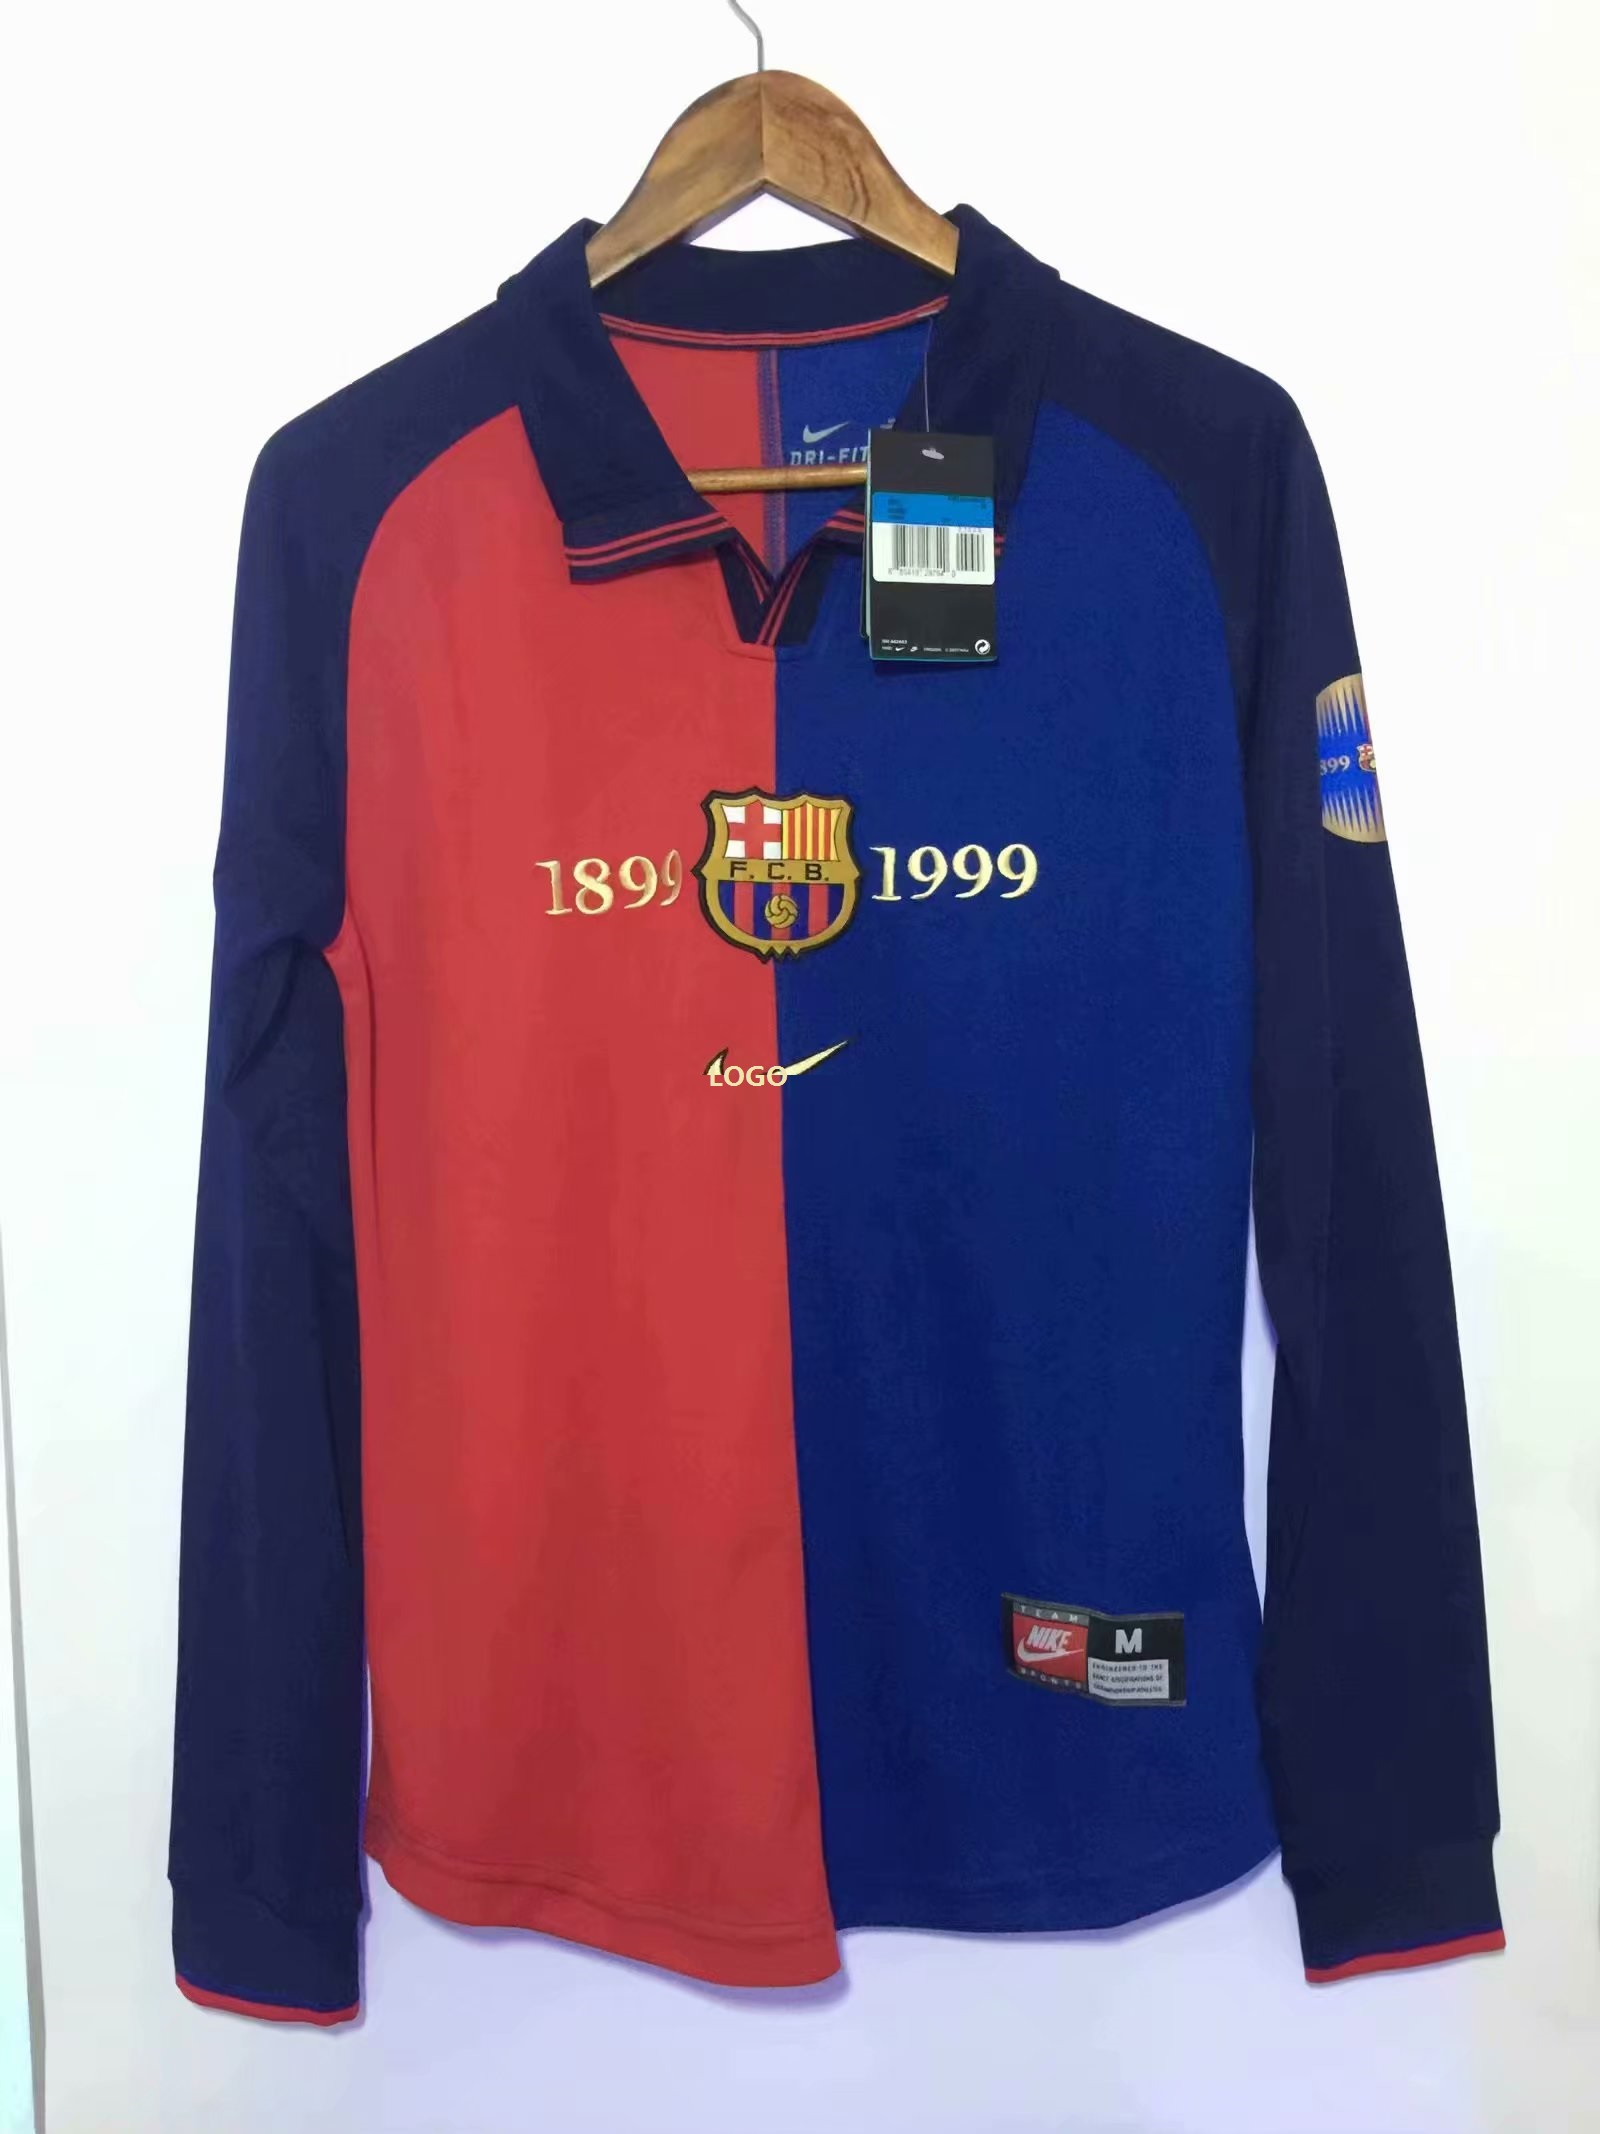 promo code ed781 38ded Men 1899-1999 Barcelona Retro 100 Years Jersey Long Sleeve Soccer Jersey